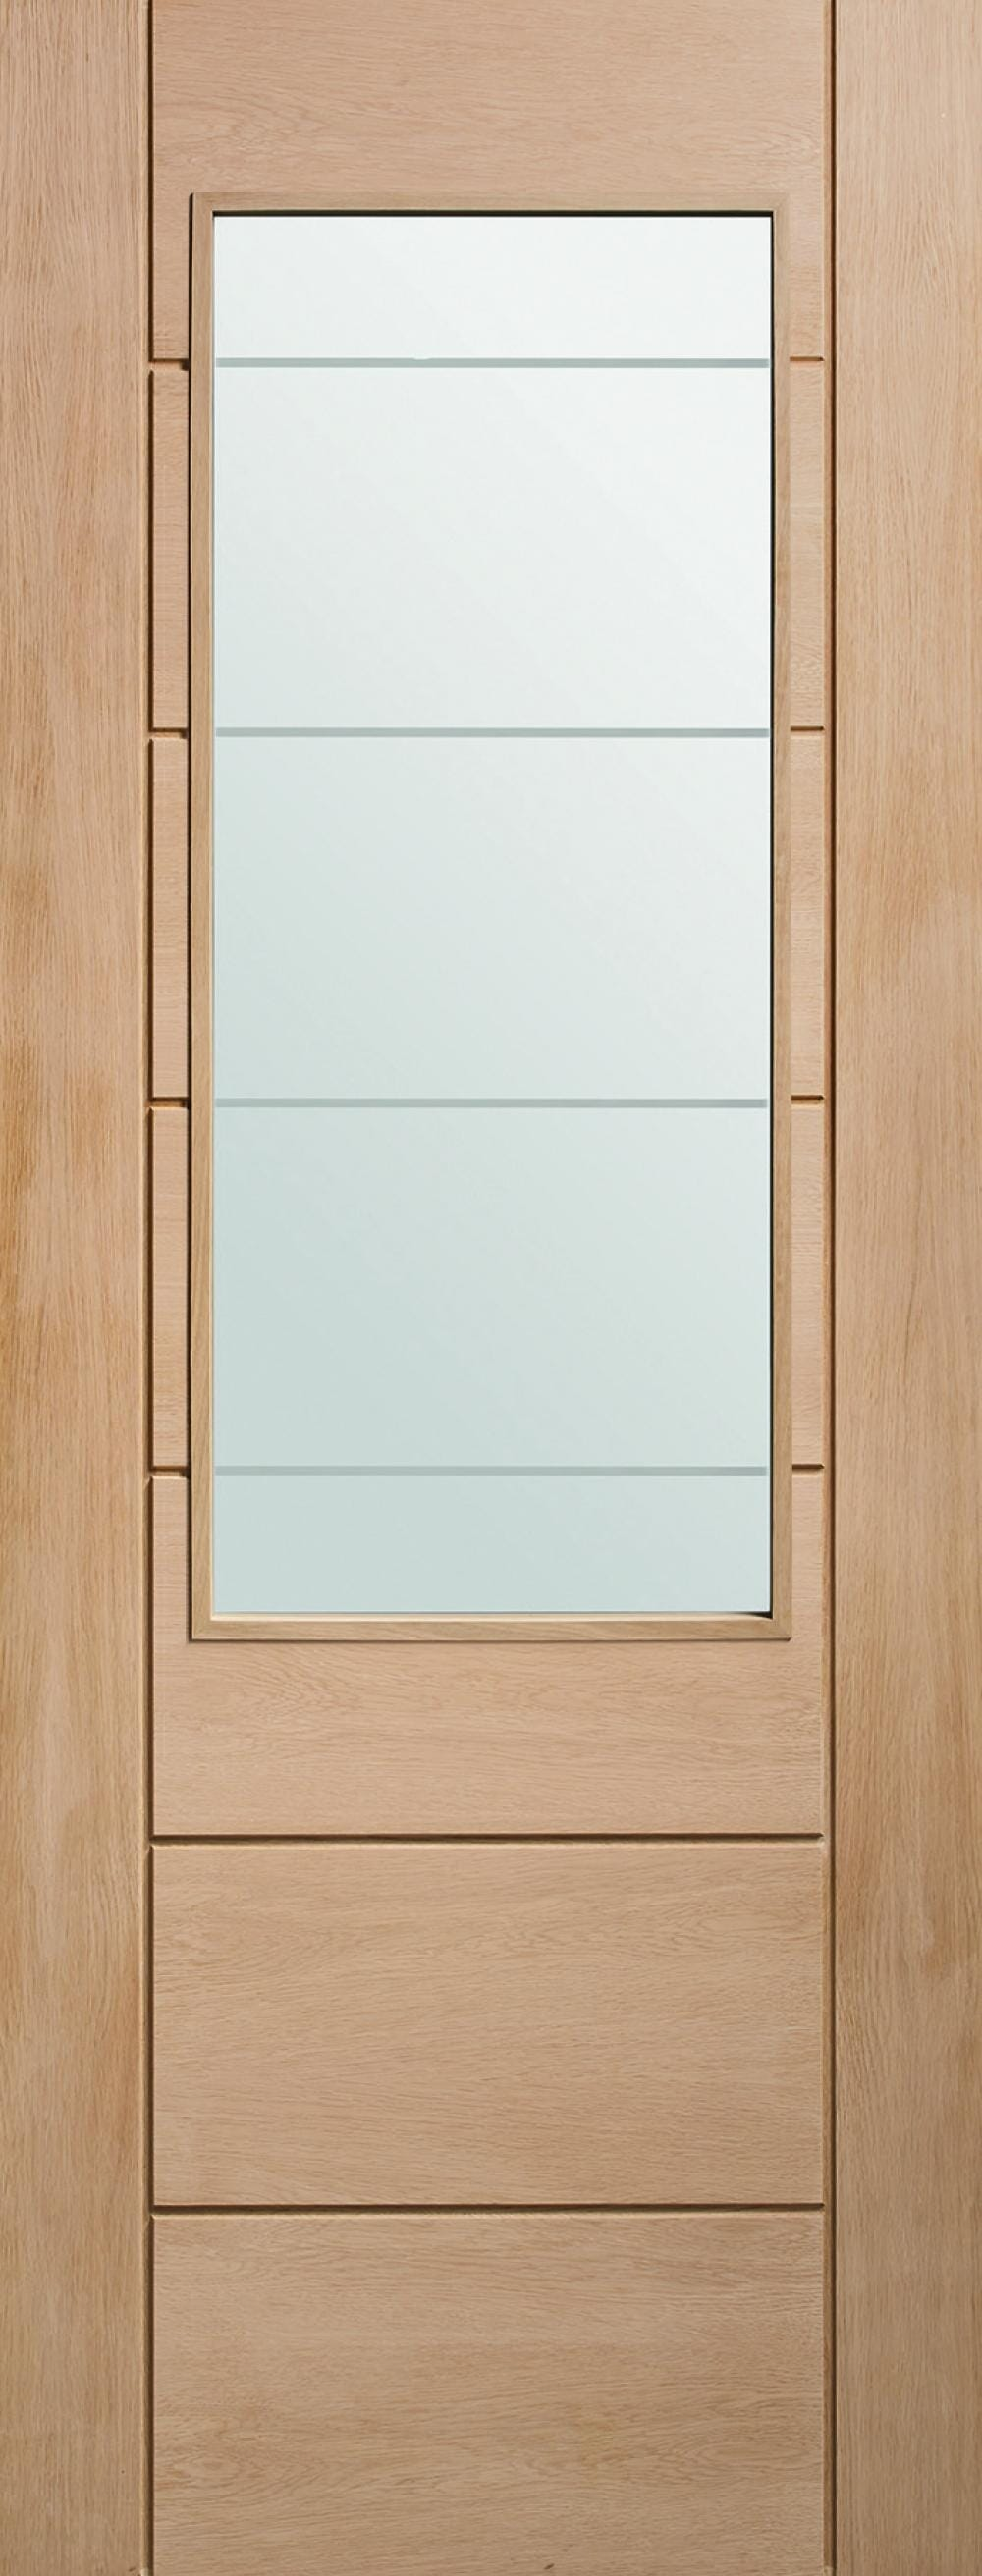 Palermo Oak 2xg - Clear Etched Glass Image